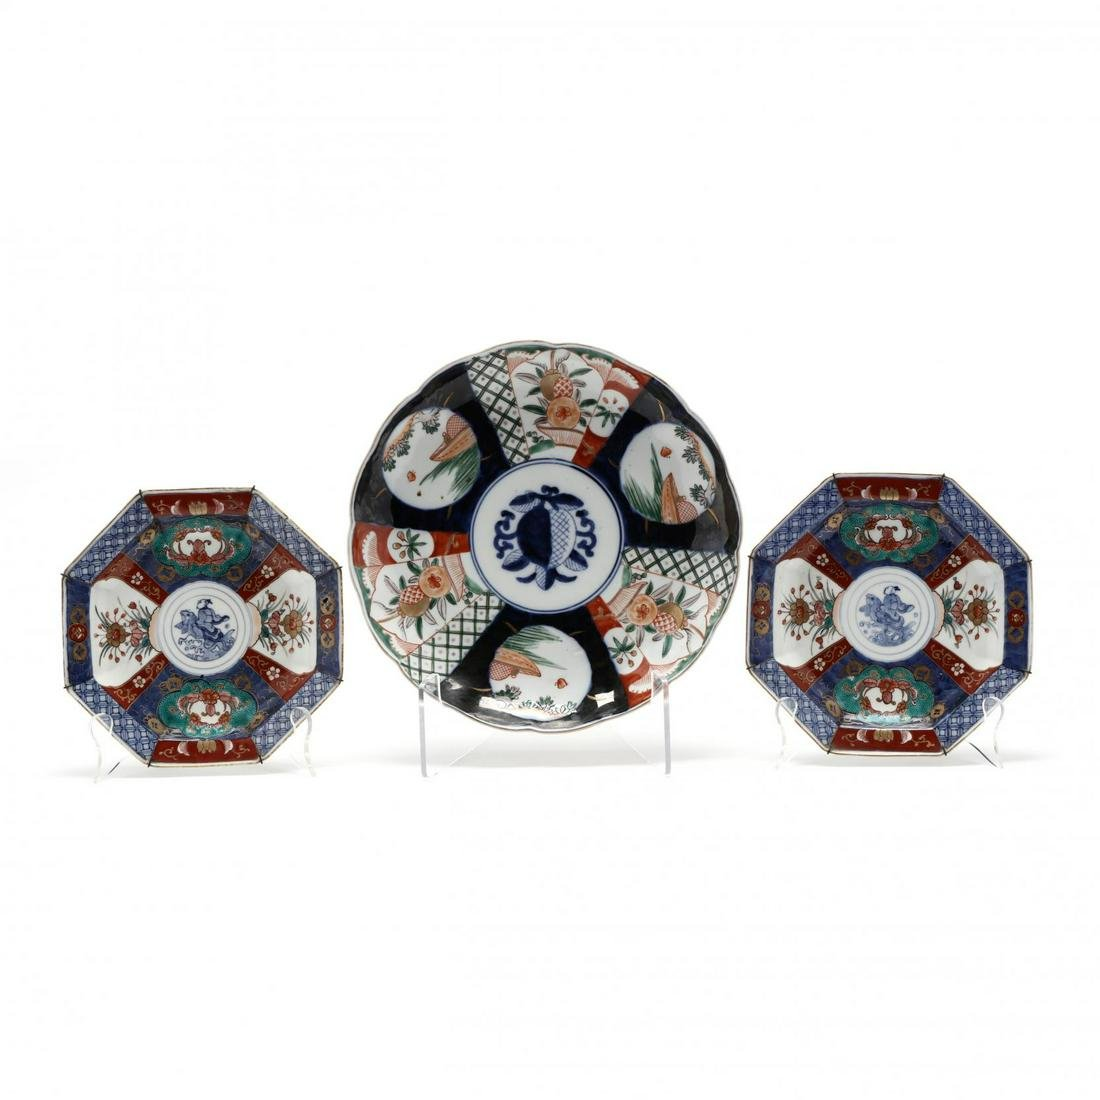 Three Pieces of Imari Porcelain